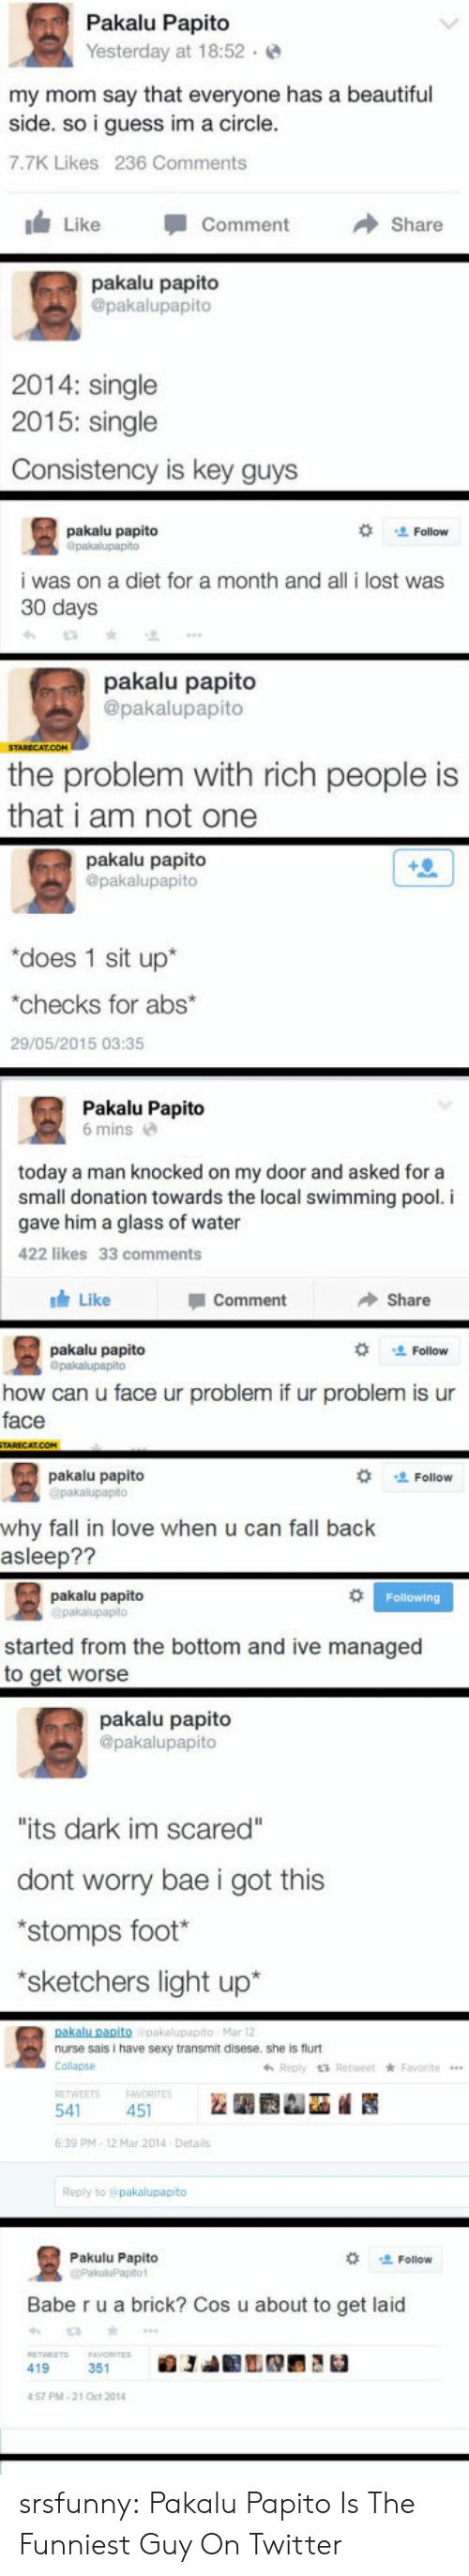 """started from the bottom: Pakalu Papito  Yesterday at 18:52.  my mom say that everyone has a beautiful  side. so i guess im a circle  7.7K Likes 236 Comments  I Like -Comment →Share  pakalu papito  @pakalupapito  2014: single  2015: single  Consistency is key guys  pakaļu papito  な 、 Follow  i was on a diet for a month and all i lost was  30 days  pakalu papito  @pakalupapito  the problem with rich people is  that i am not one  pakalu papito  @pakalupapito  """"does 1 sit up*  checks for abs  29/05/2015 03:35  Pakalu Papito  6 mins  today a man knocked on my door and asked for a  small donation towards the local swimming pool. i  gave him a glass of water  422 likes 33 comments  Like  Comment  Share  pakalu papito  Opakalupapito  Follow  how can u face ur problem if ur problem is ur  face  pakalu papito  Follow  why fall in love when u can fall back  asleep??  pakalu papito  started from the bottom and ive managed  to get worse  pakalu papito  @pakalupapito  its dark im scared""""  dont worry bae i got this  stomps foot  sketchers light up*  nurse sais I have sexy transmit disese, she is flurt  Collapse  639 PM-12 Mar 2014 Detail  Reply to  Pakulu Papito  Follow  Babe r u a brick? Cos u about to get laid  419  57 PM-21 Oct 2014 srsfunny:  Pakalu Papito Is The Funniest Guy On Twitter"""